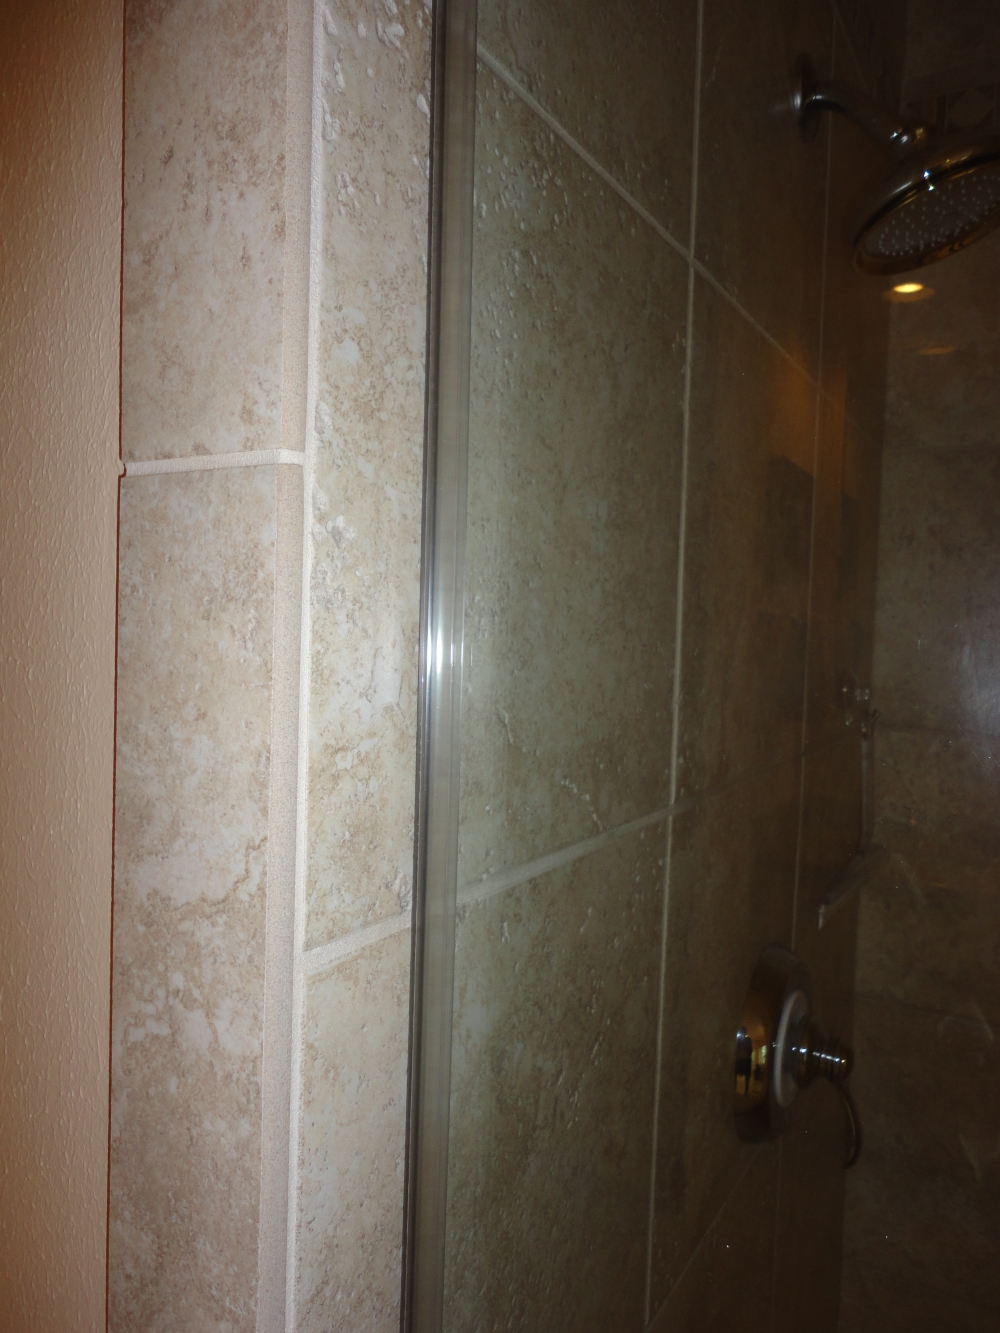 About Shower Doors, Frameless Doors, Glass Enclosures: How They Are ...